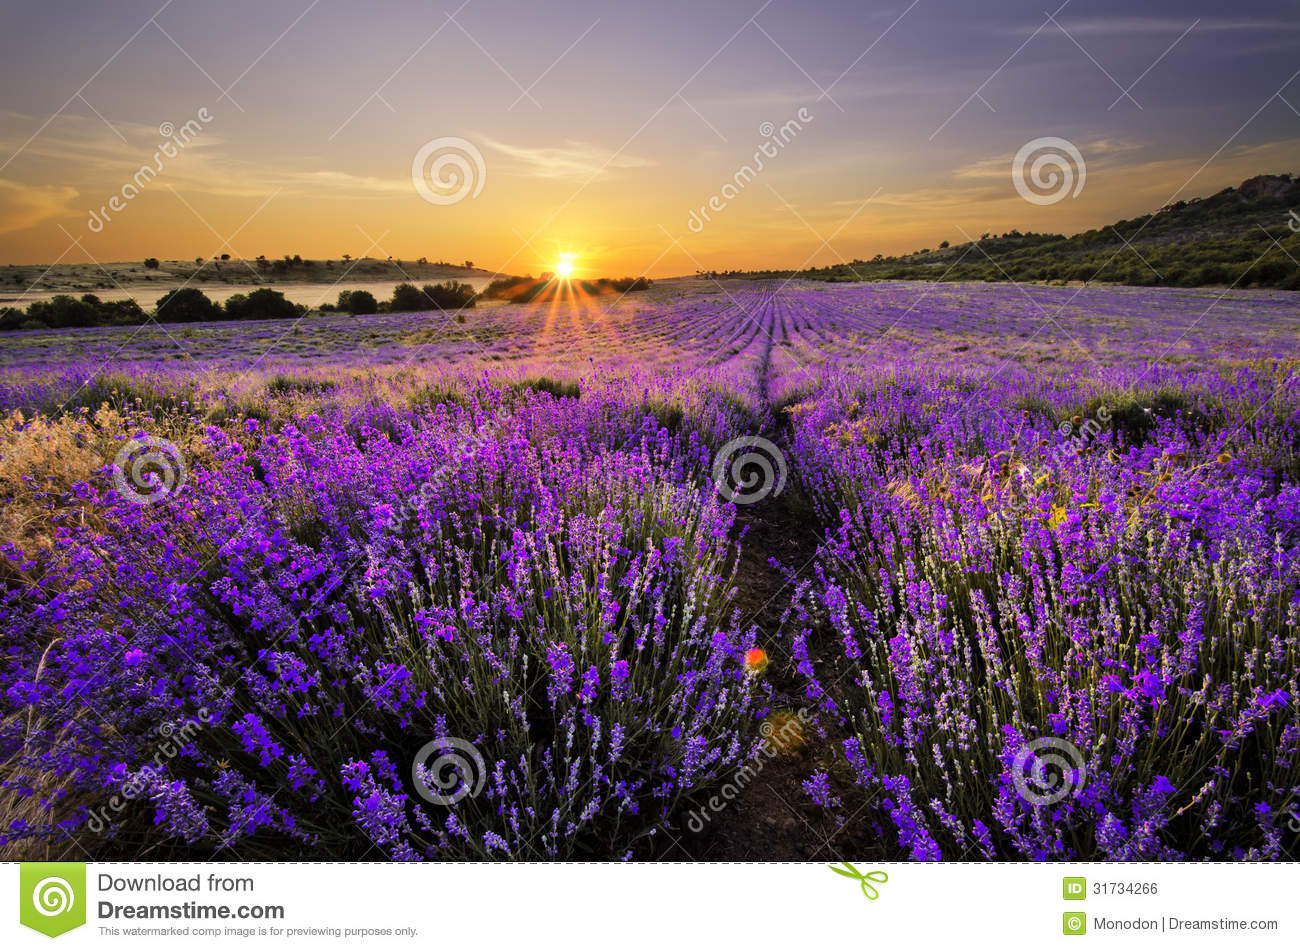 Fall Farm Wallpaper Sunset Over Lavender Field Stock Photo Image Of Clouds